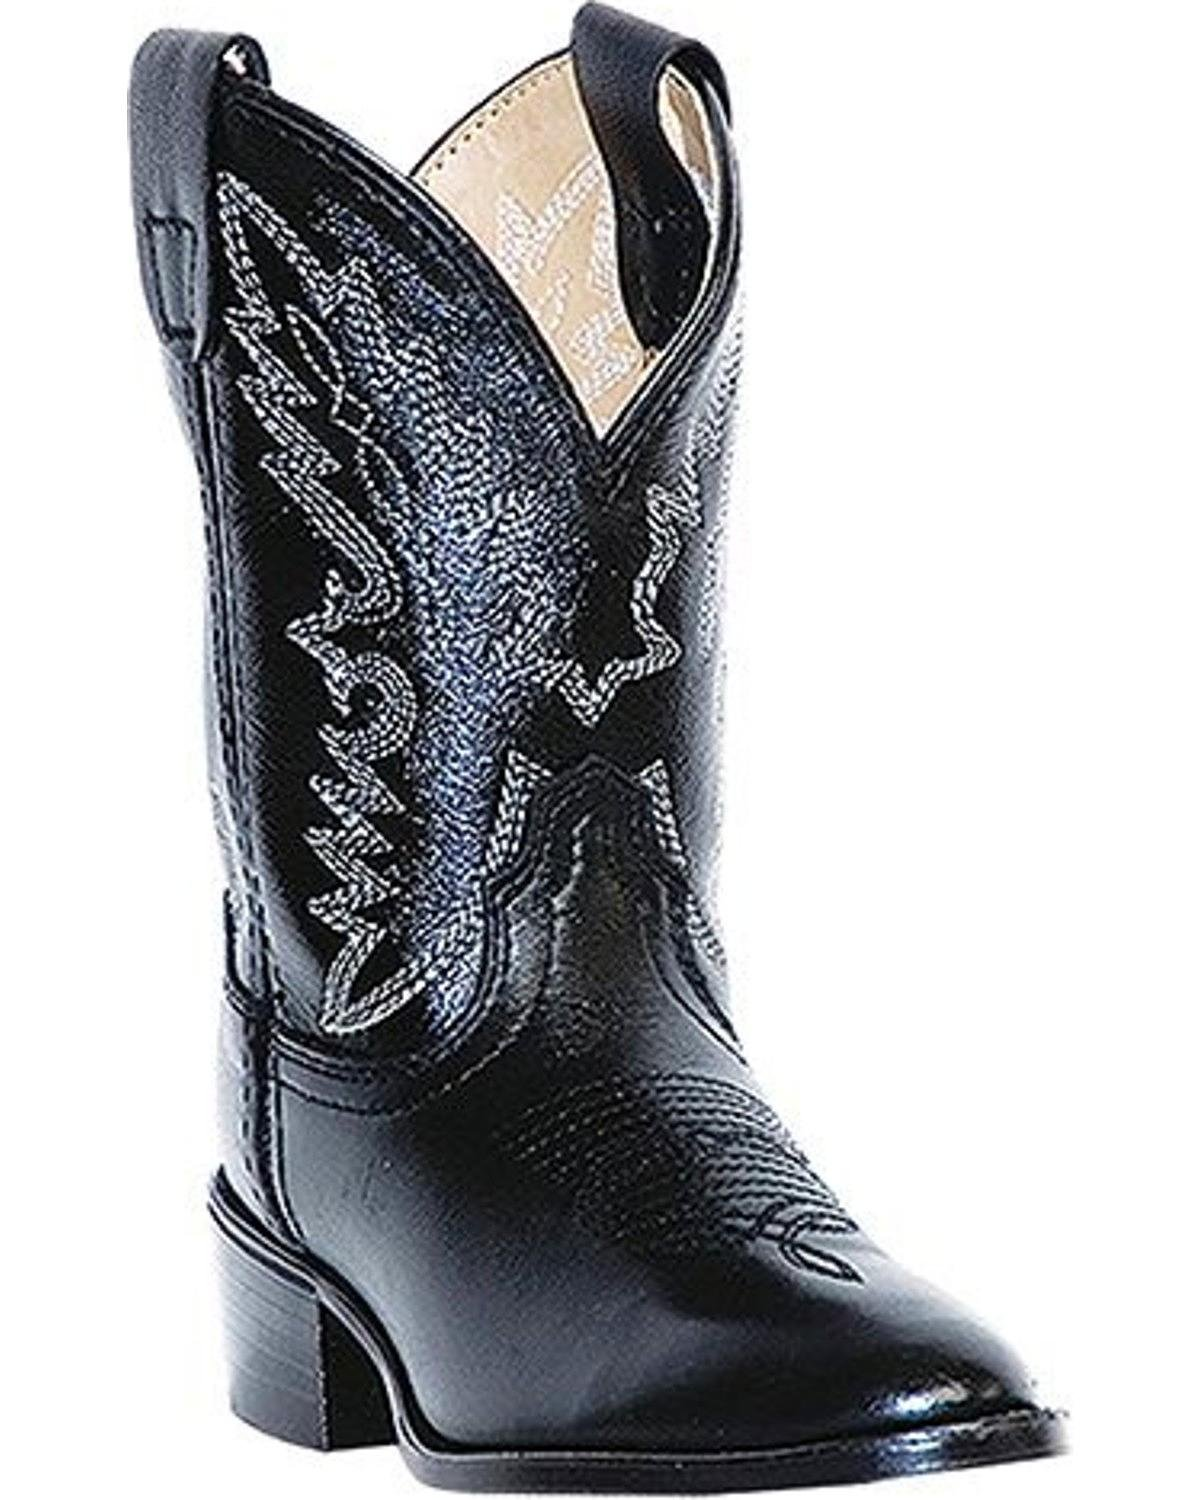 Dan Post Boys' Chaps Cowboy Boot Round Toe Black 9.5 D(M) US by Dan Post Boot Company (Image #1)